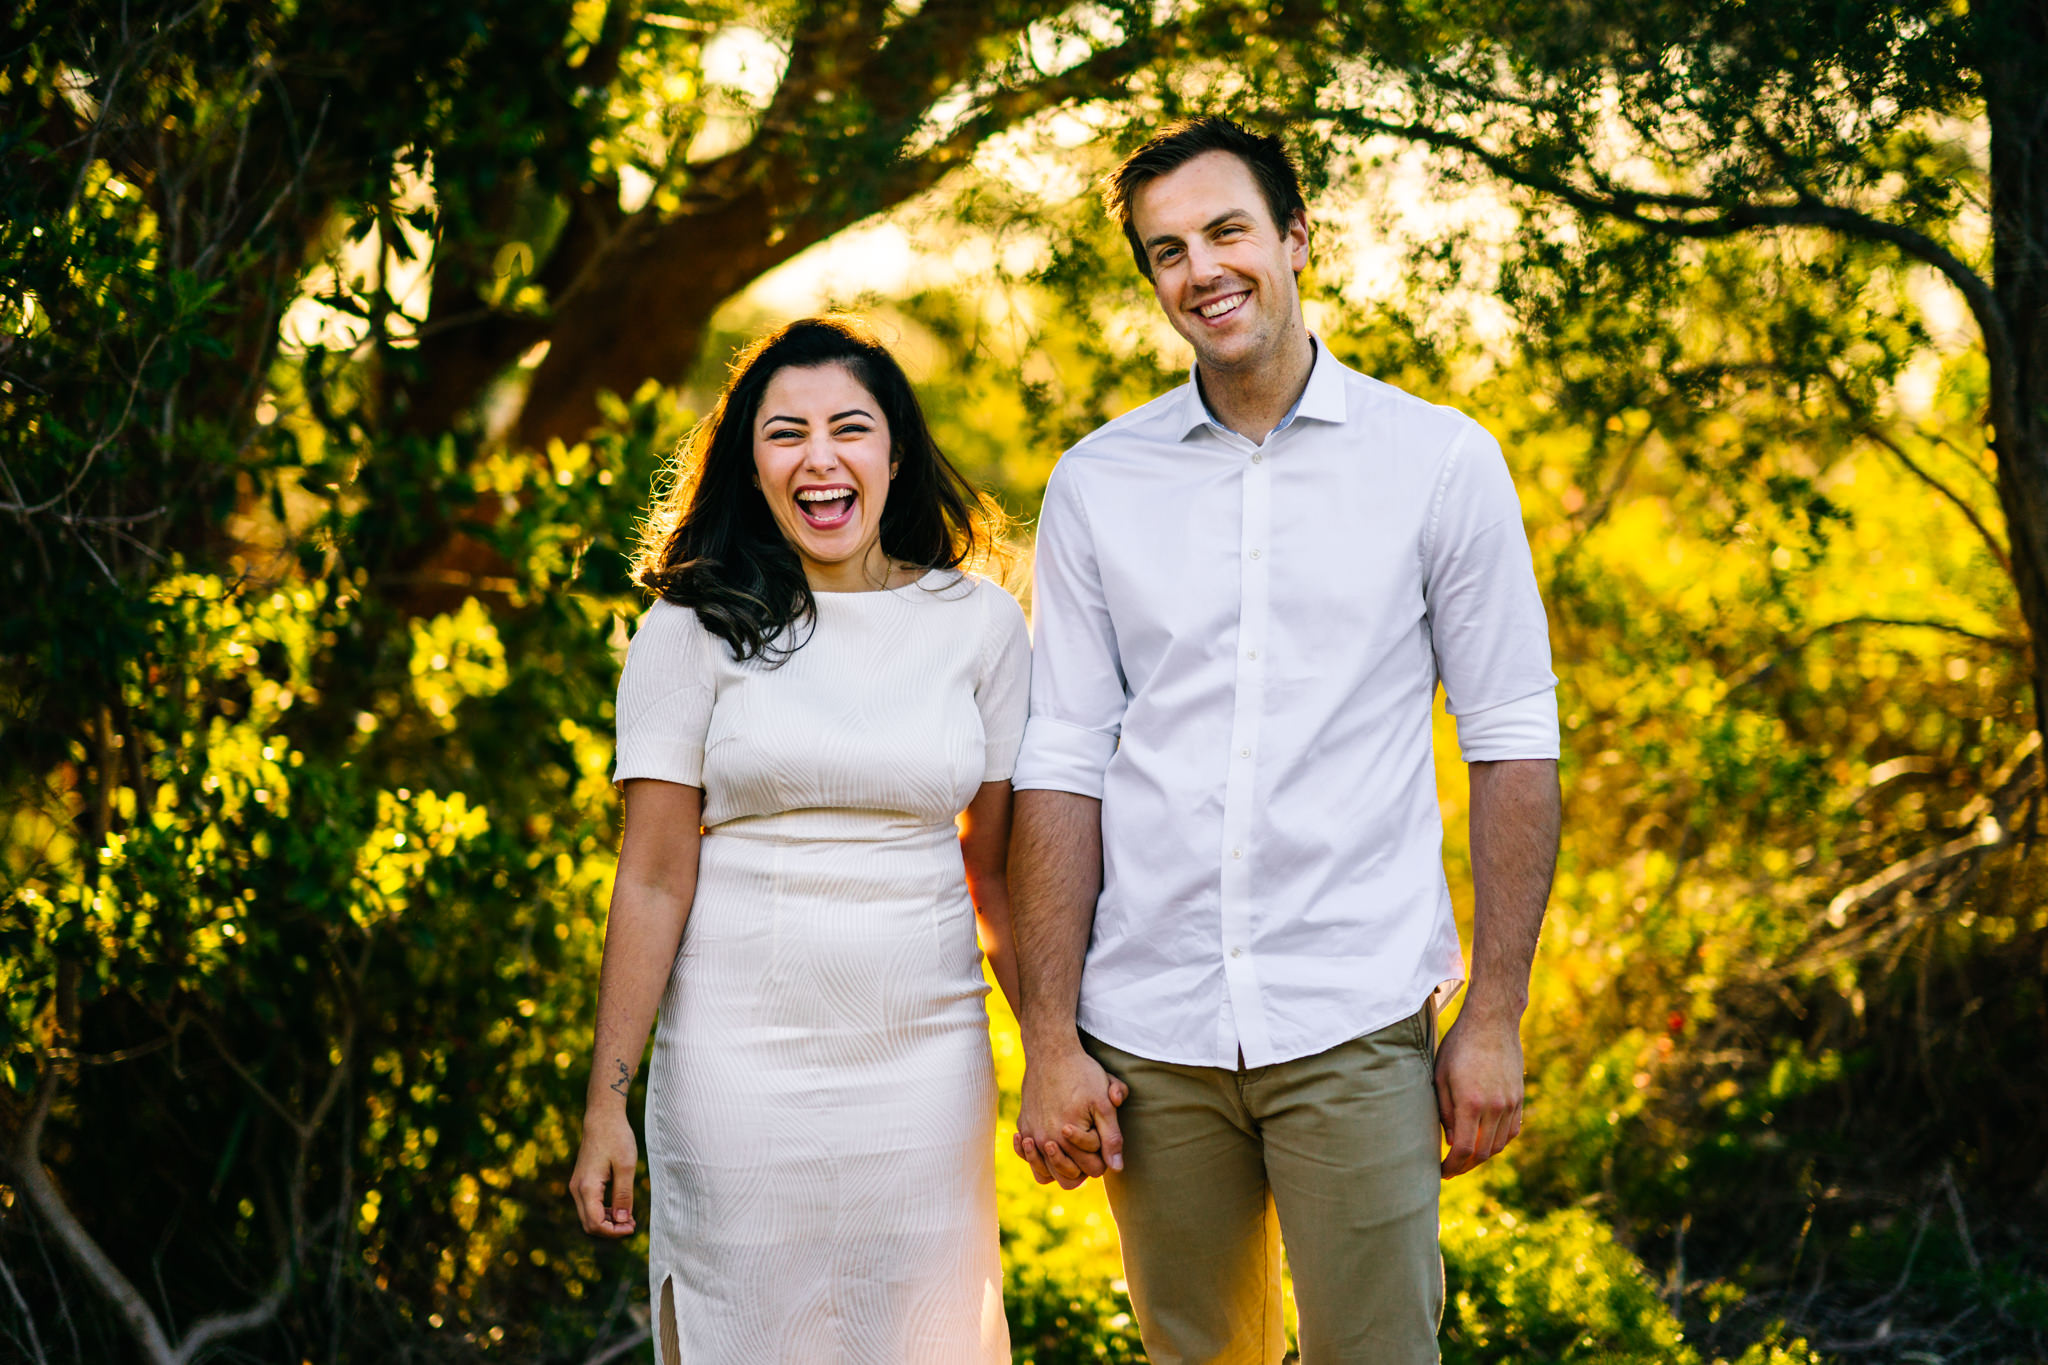 Bride to be laughs during engagement session